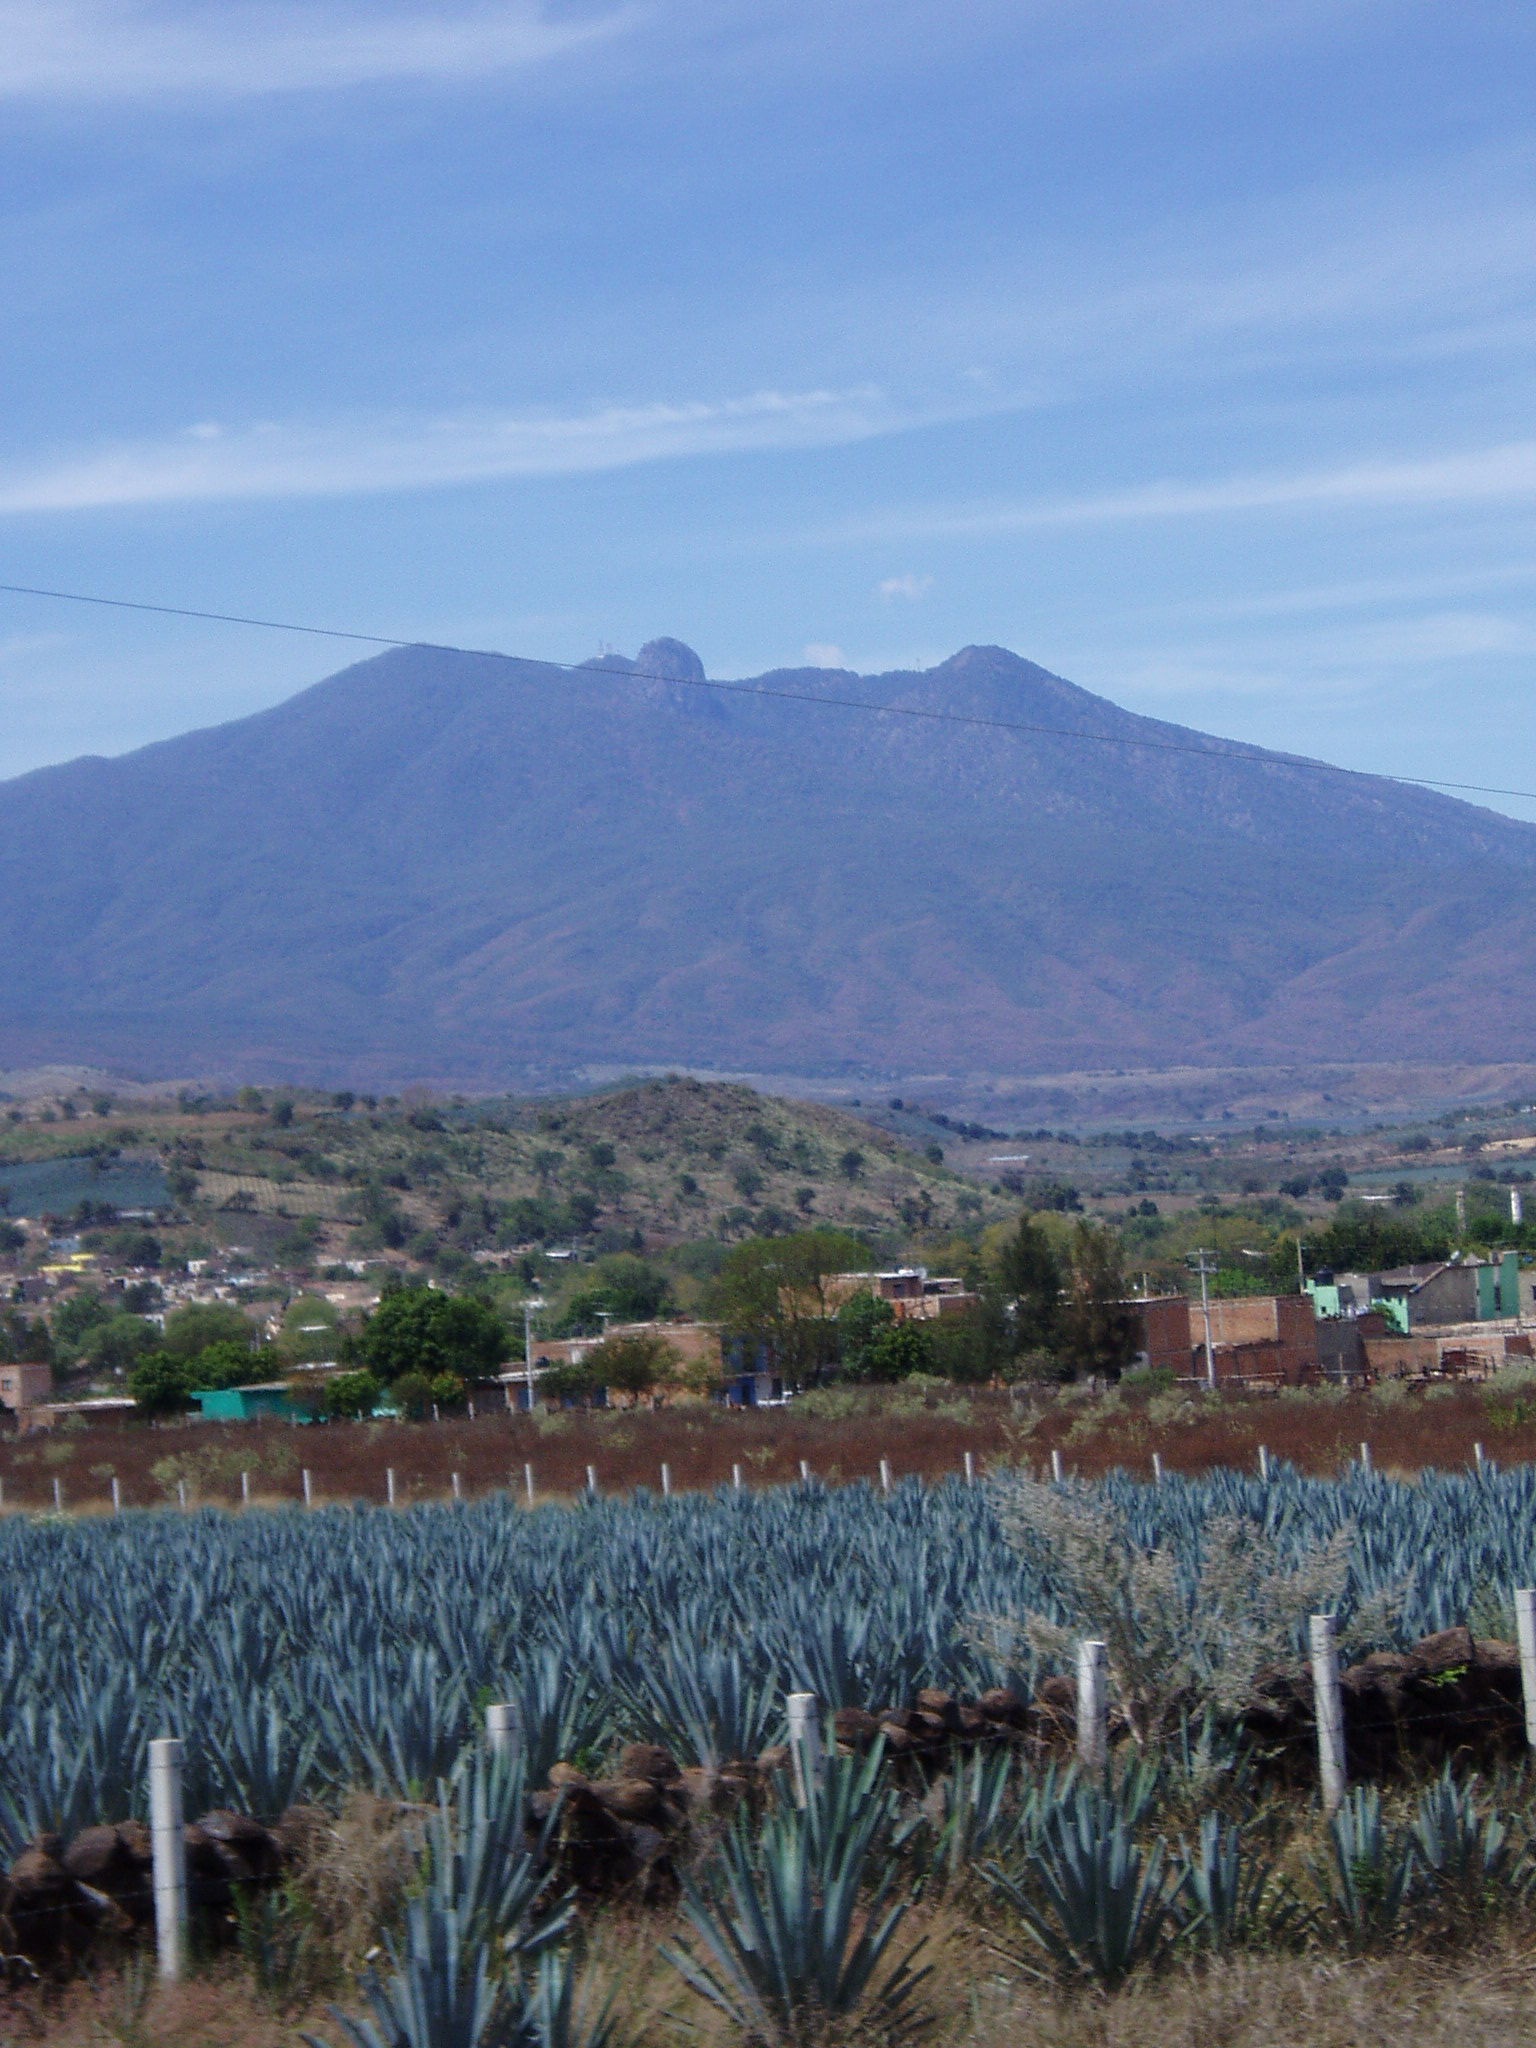 Agave fields mountain Tequila places to visit in Mexico